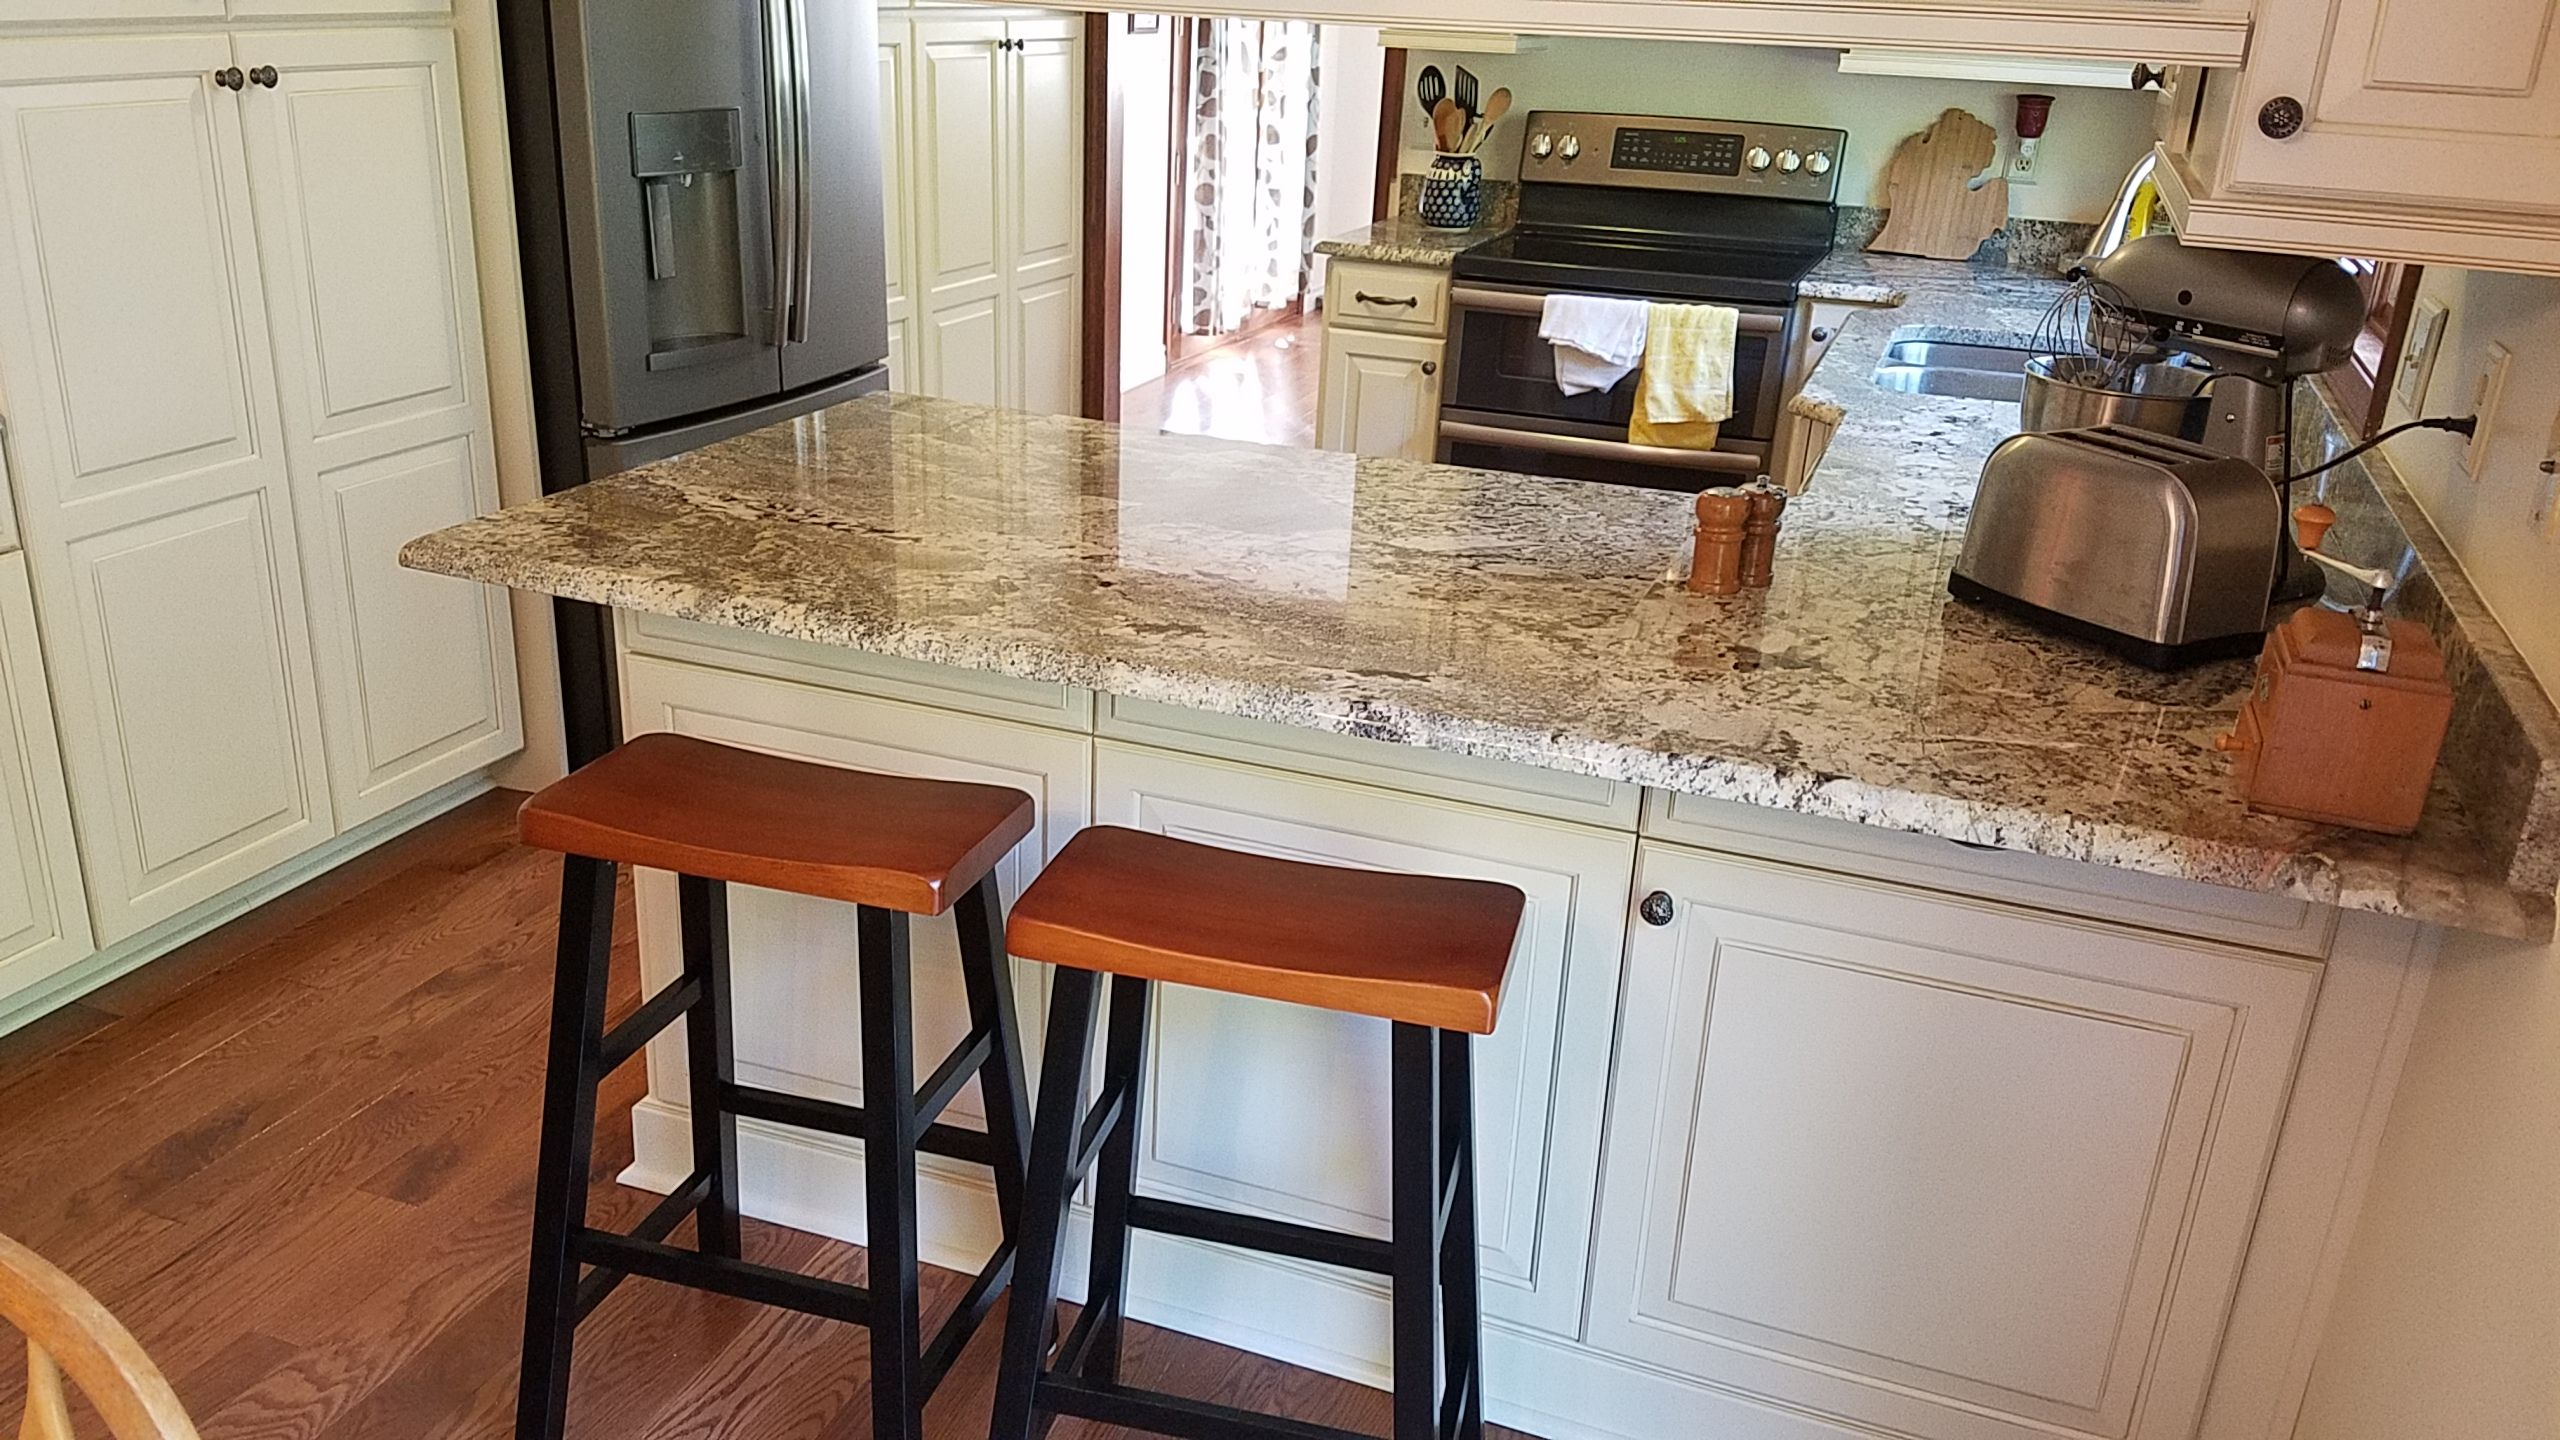 Additional Guest Seating Added To The Countertop Area Overhang Added Furniture Panels Minic The Cabinet Doors Where Cabinet Kitchen Design Kitchen Countertops